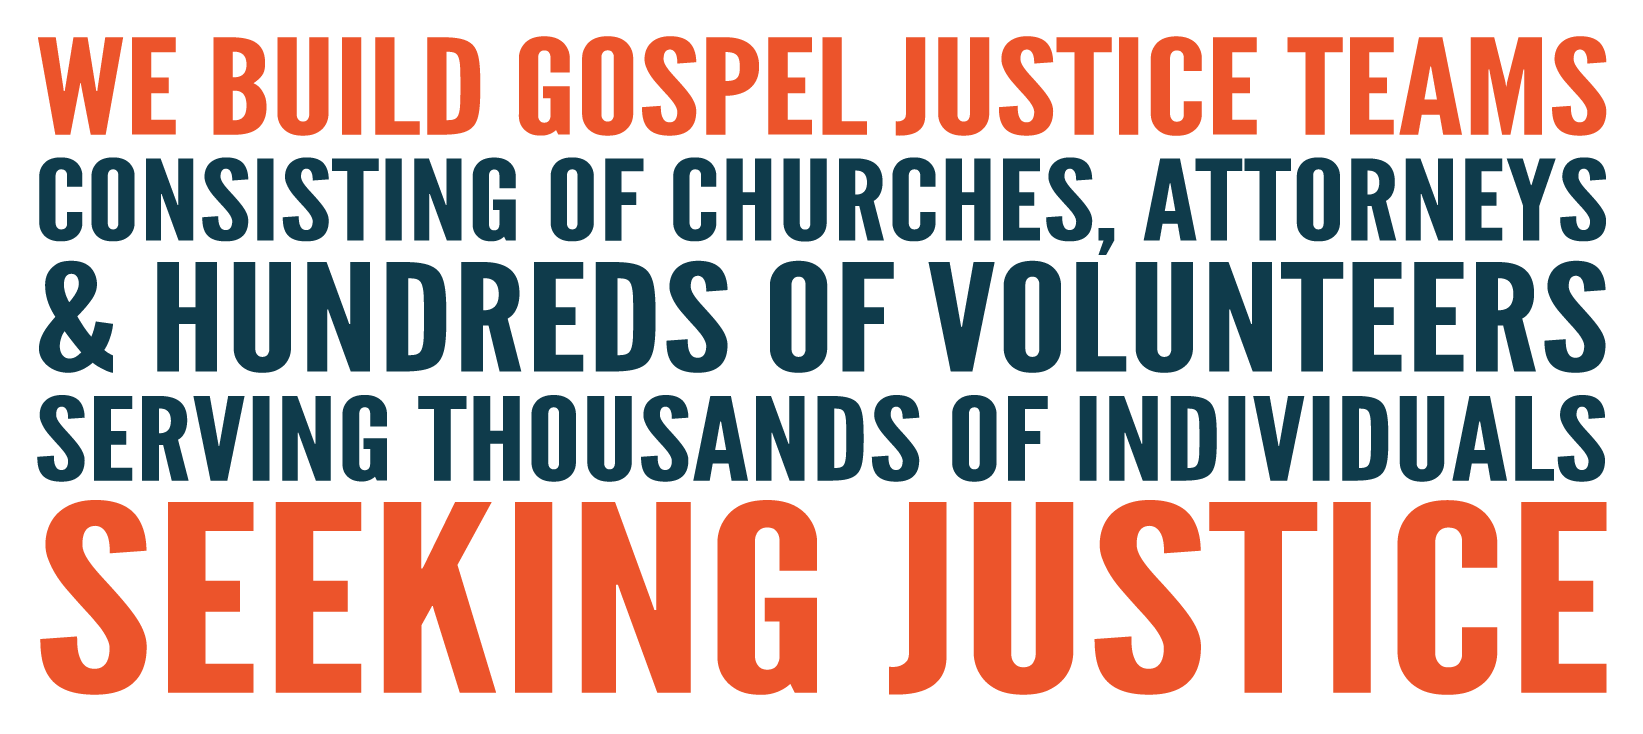 we-build-gospel-justice-teams-v1